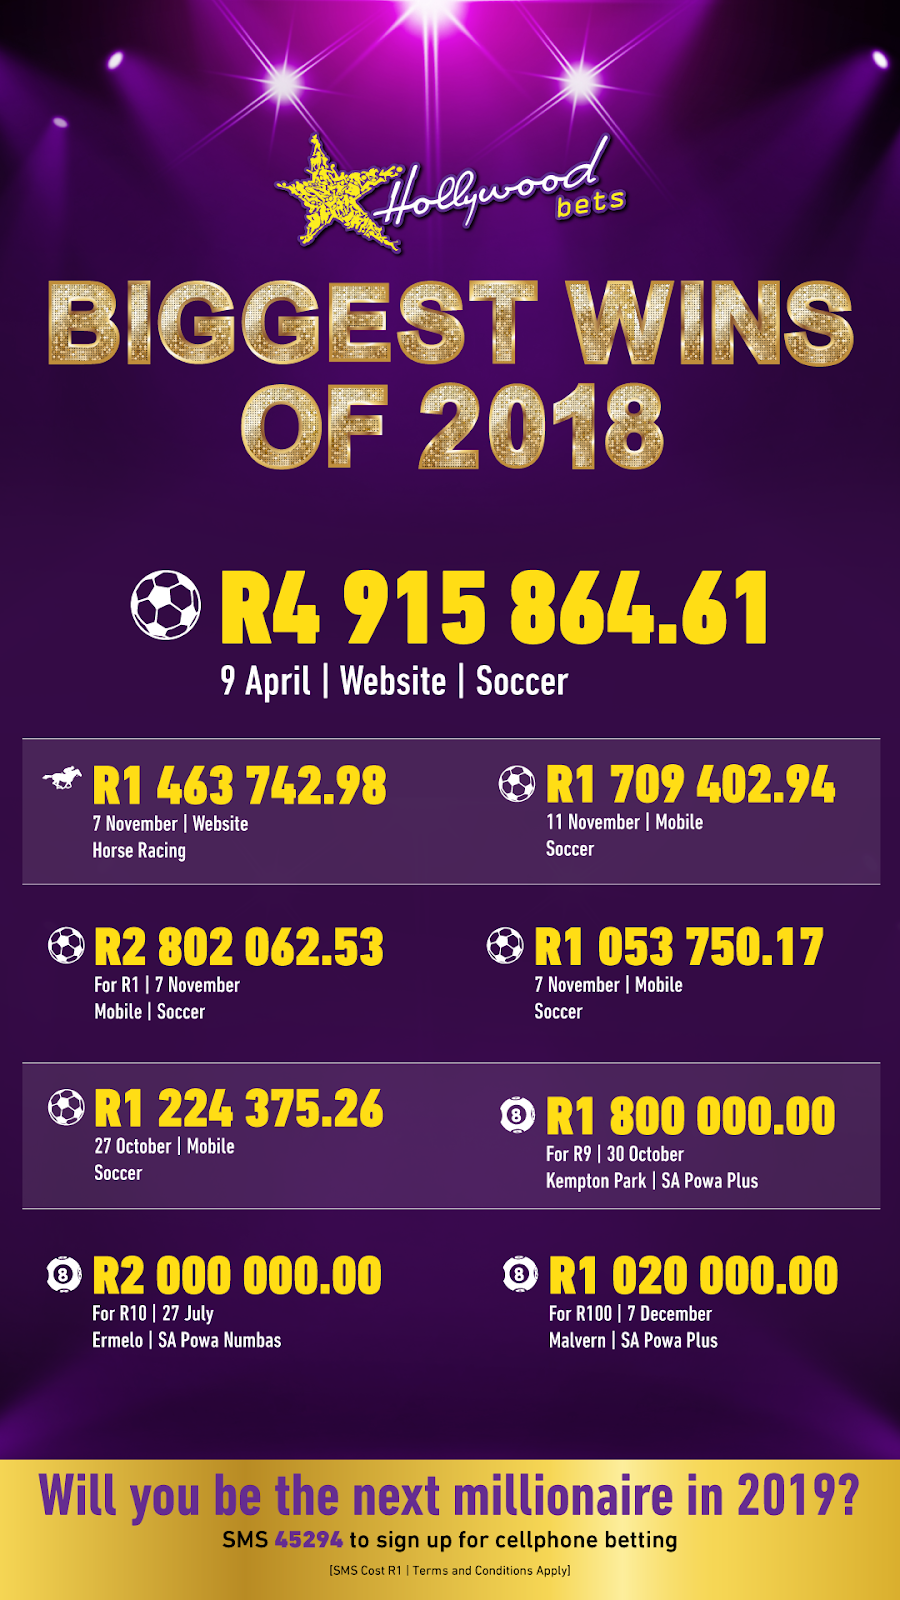 Biggest Wins of 2018 - Hollywoodbets